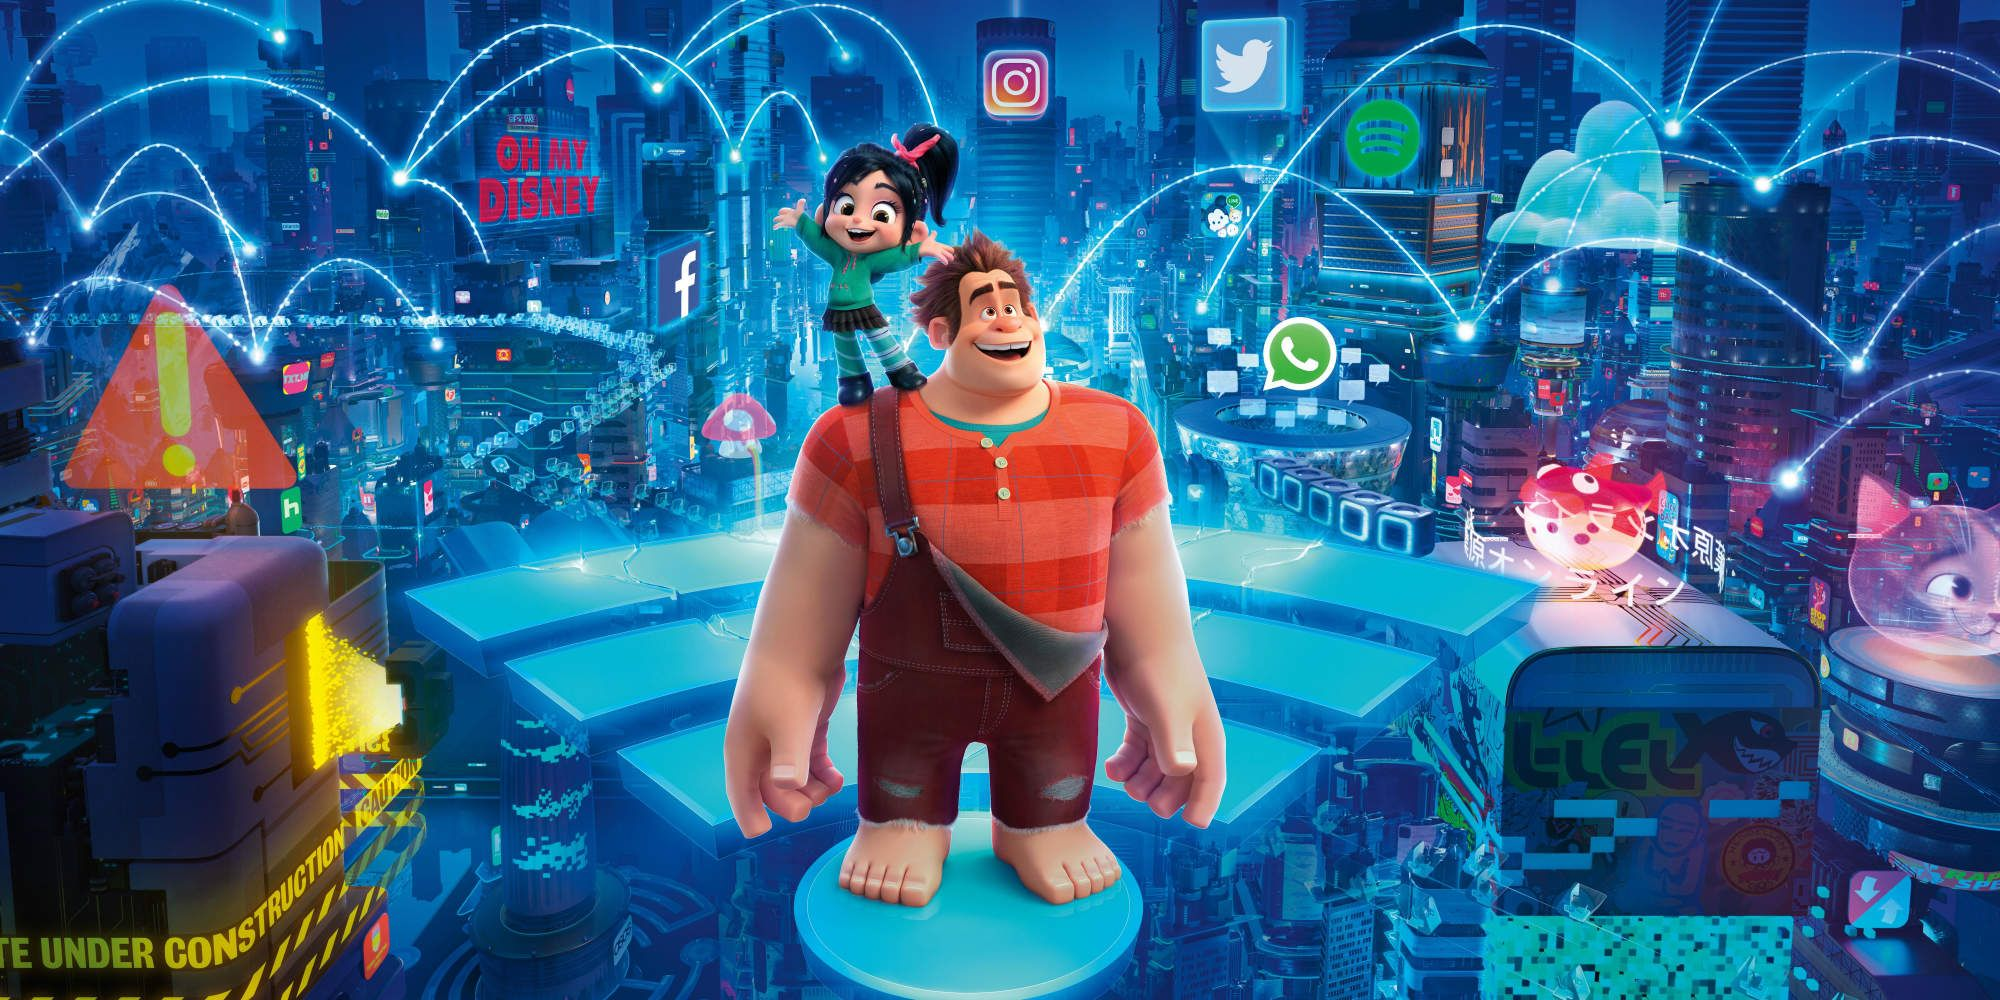 Direct Tv Internet Review >> Ralph Breaks the Internet Movie Review | Screen Rant